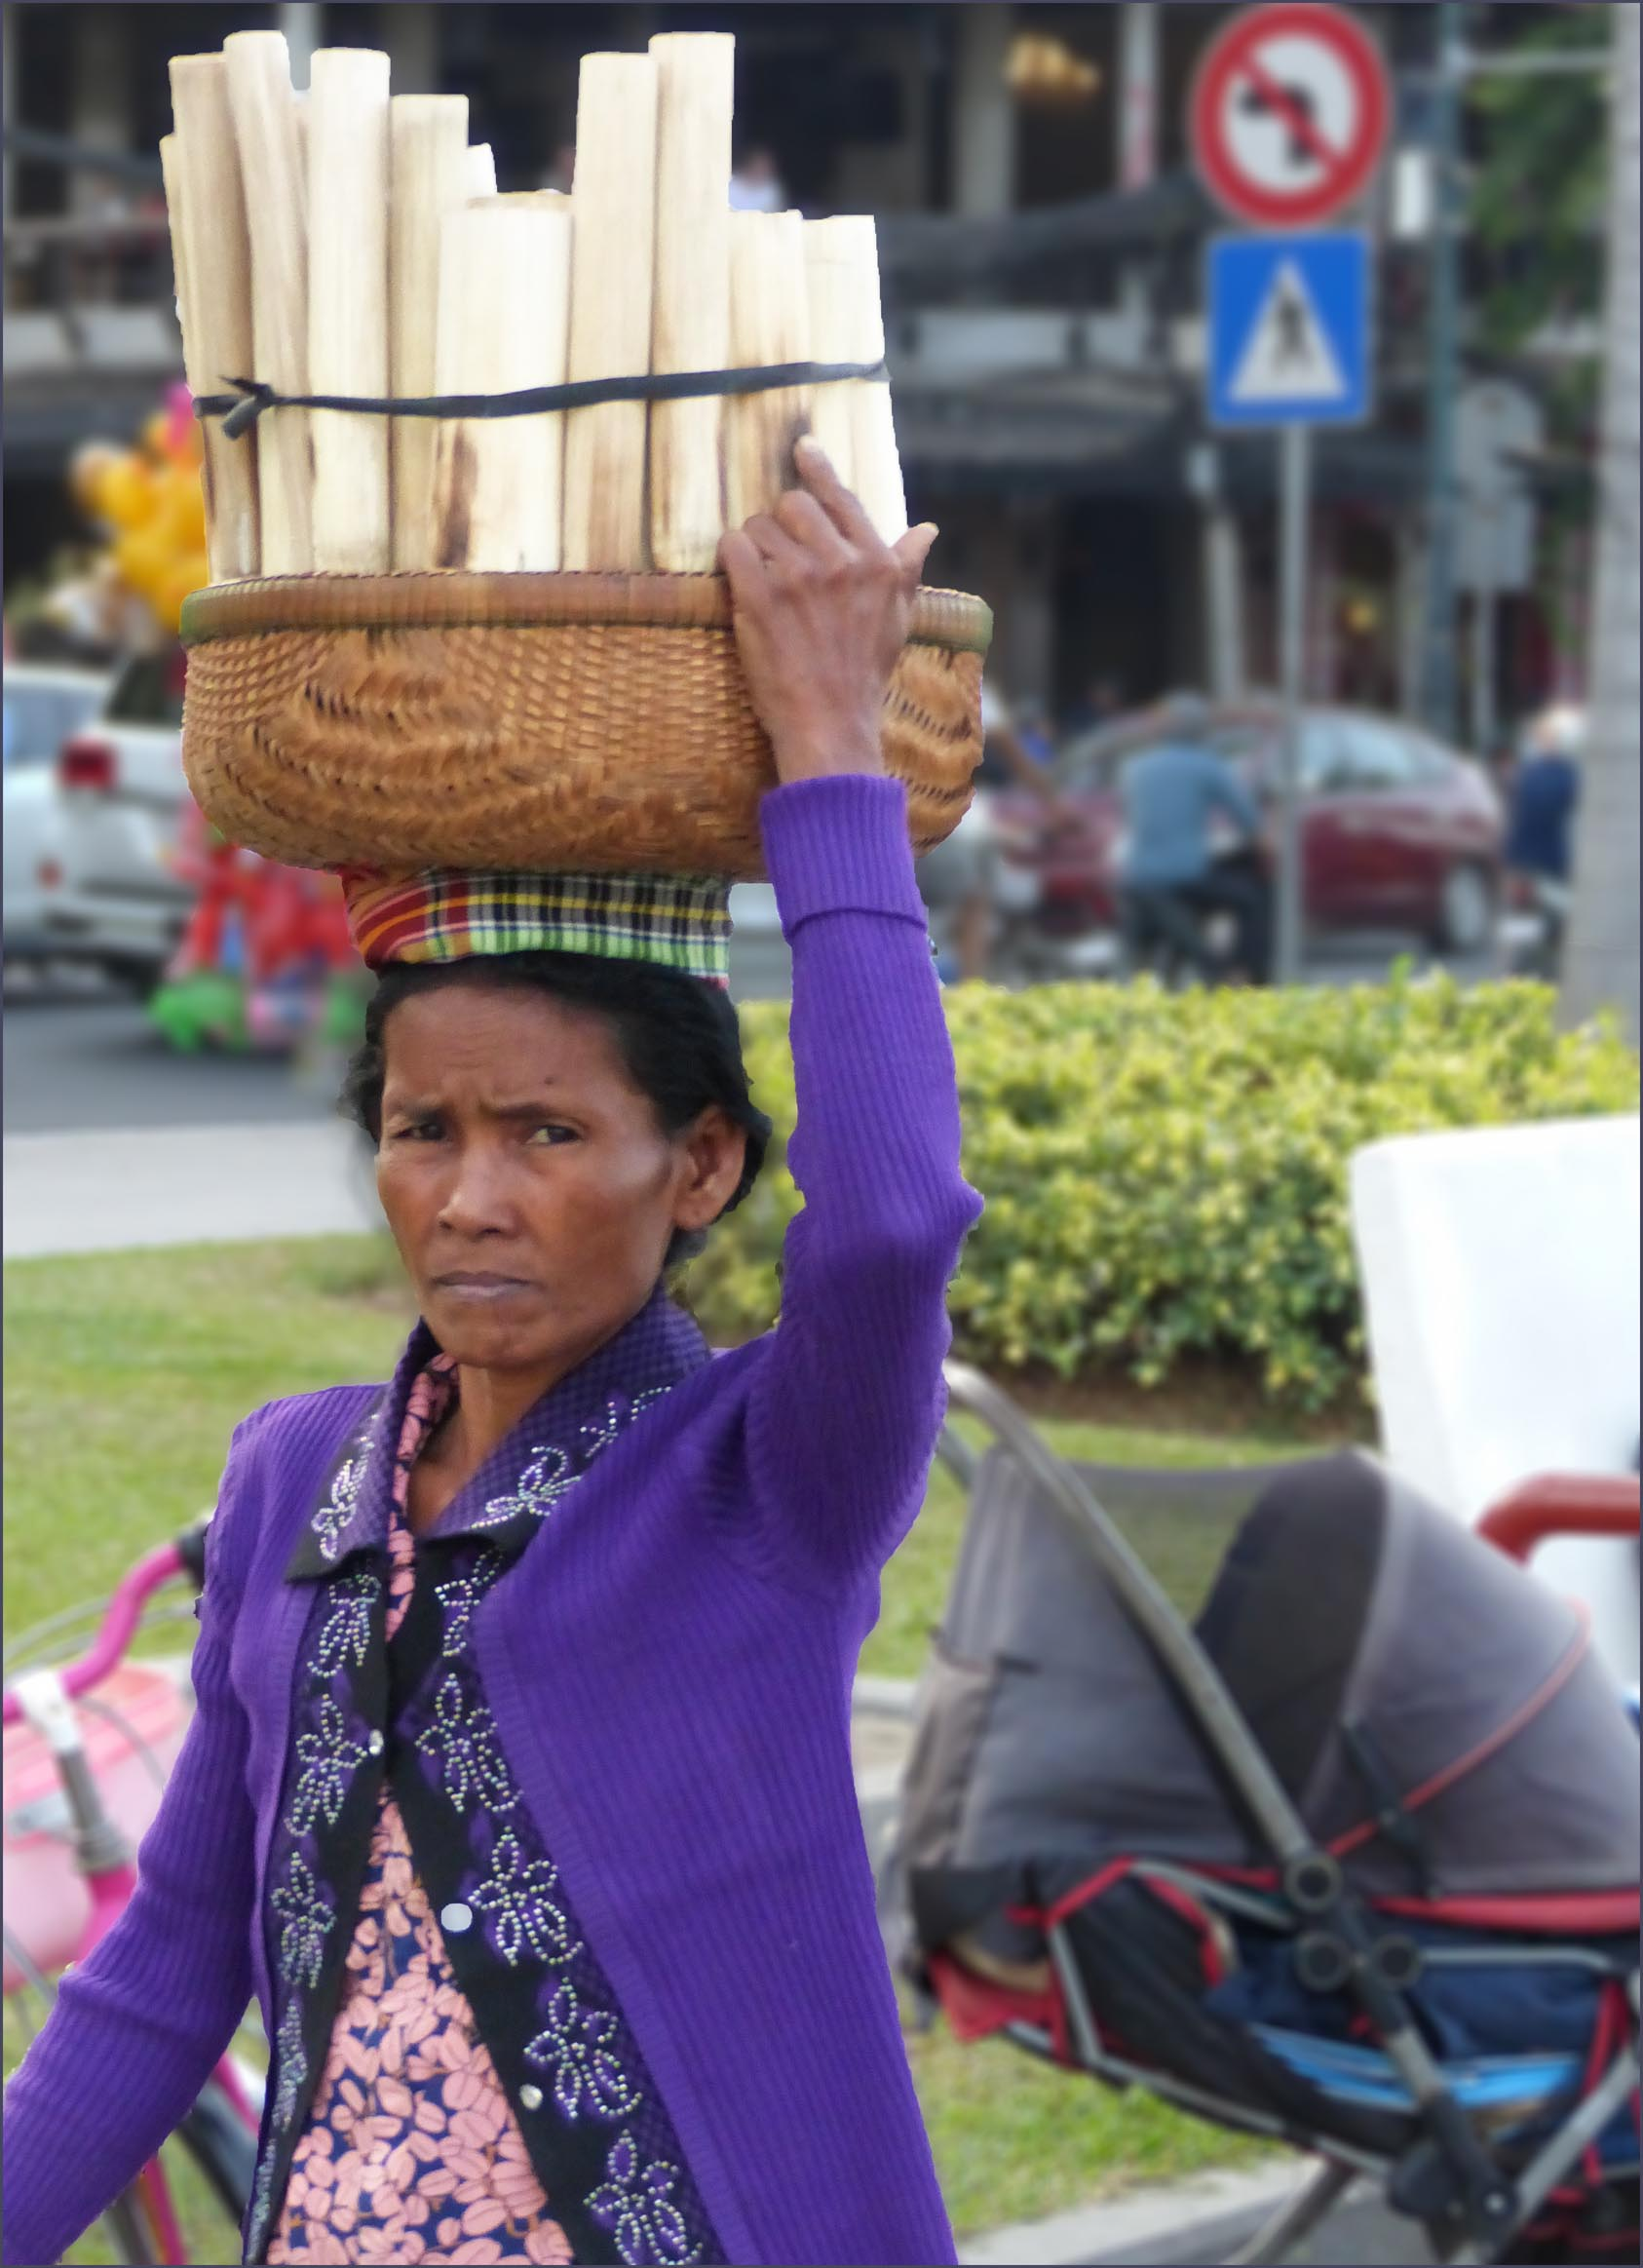 Woman with basket on her head